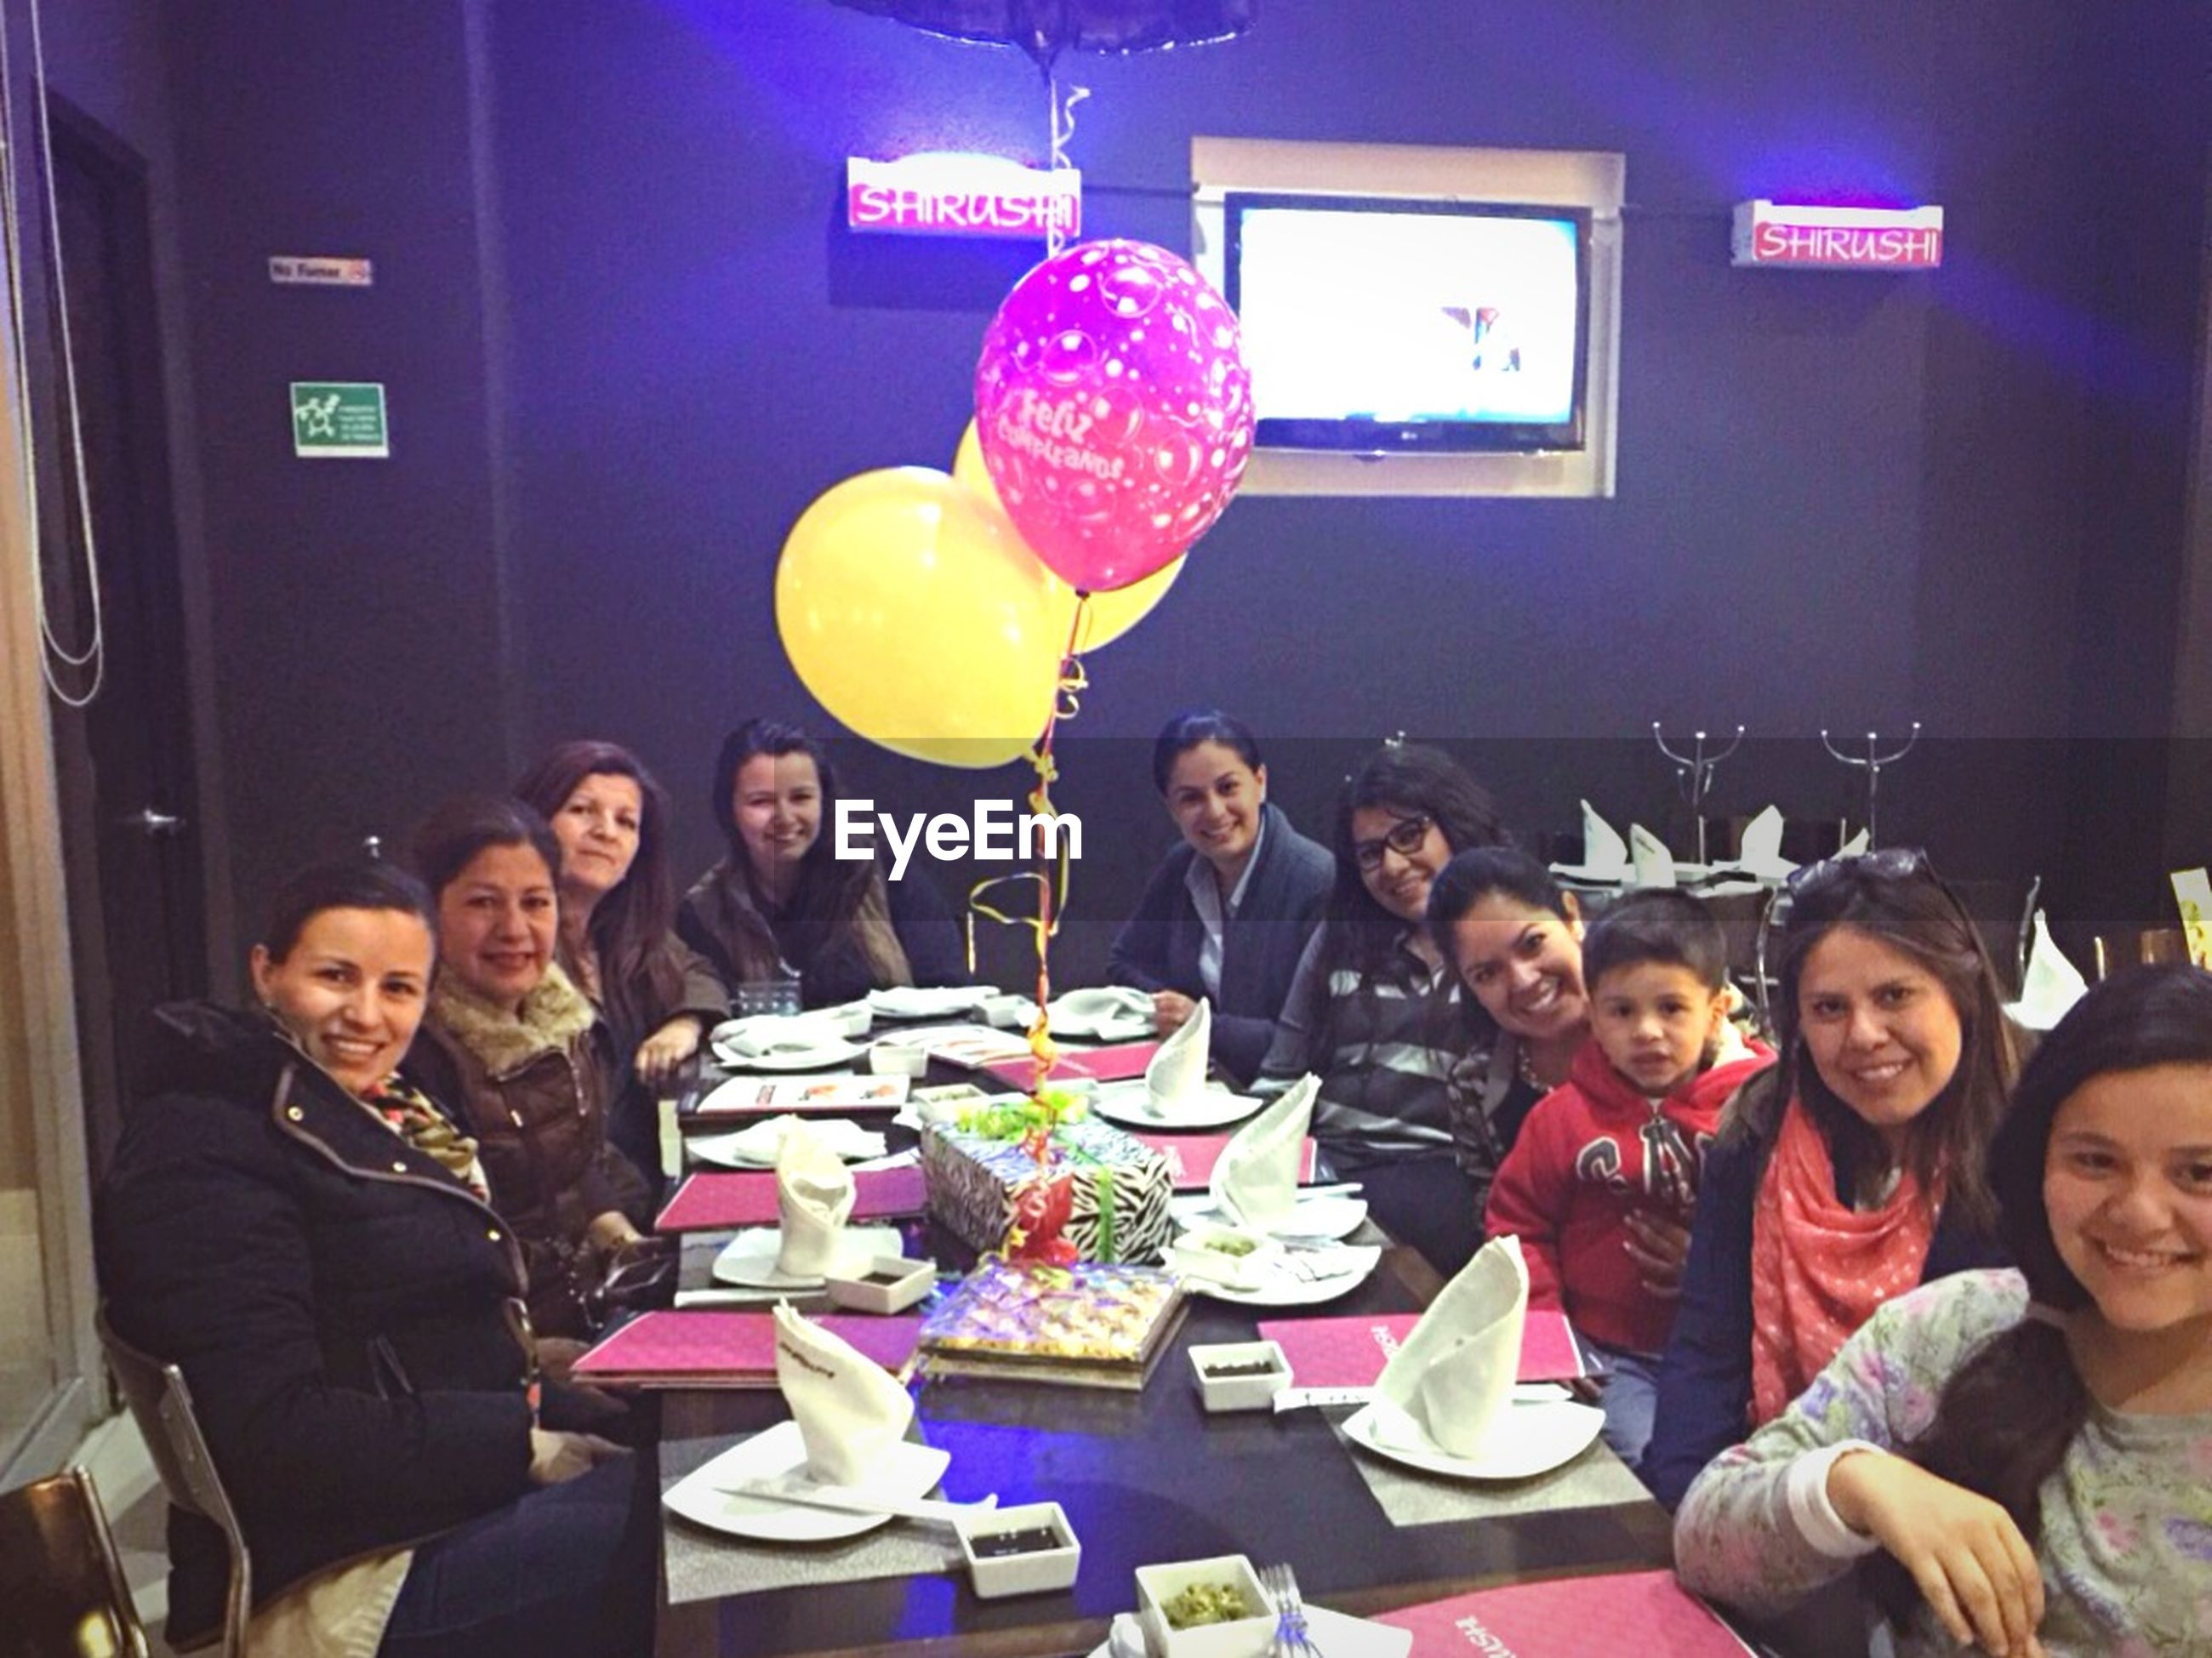 lifestyles, celebration, leisure activity, togetherness, happiness, indoors, illuminated, fun, person, enjoyment, childhood, casual clothing, balloon, smiling, front view, standing, night, elementary age, bonding